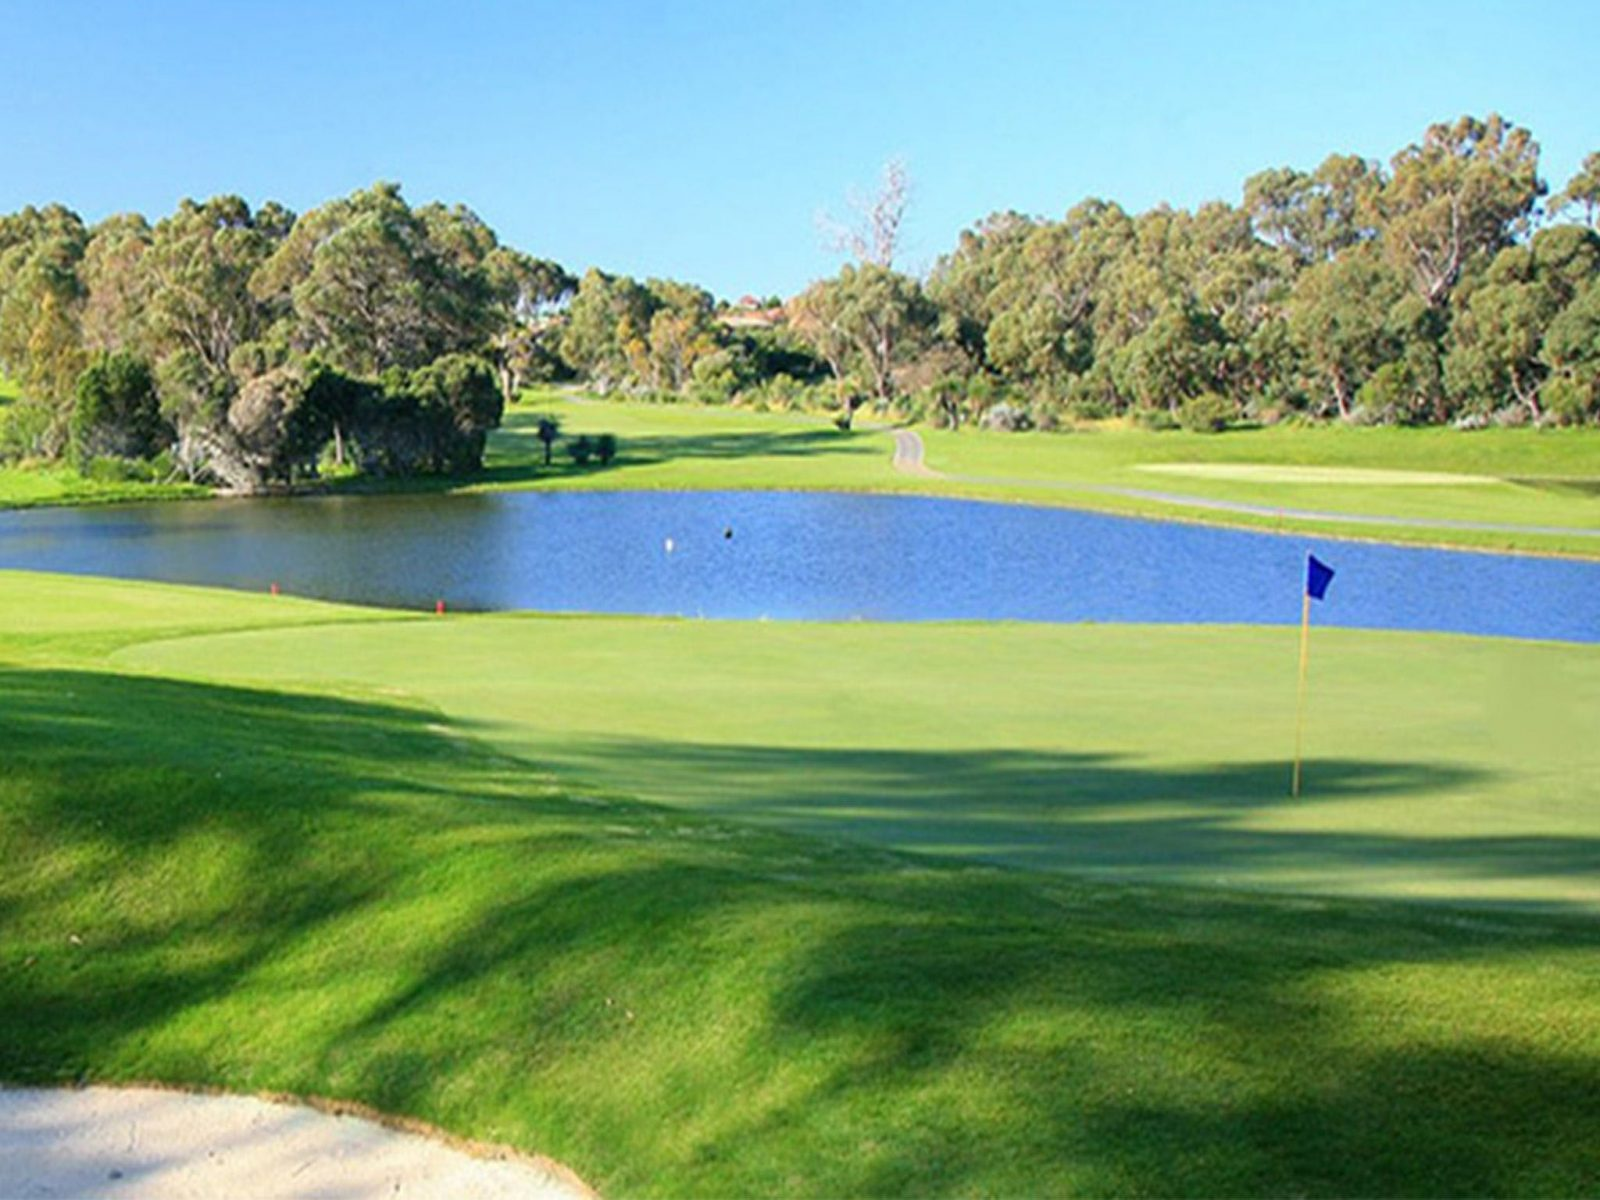 Joondalup Resort and Country Club, Joondalup, Western Australia